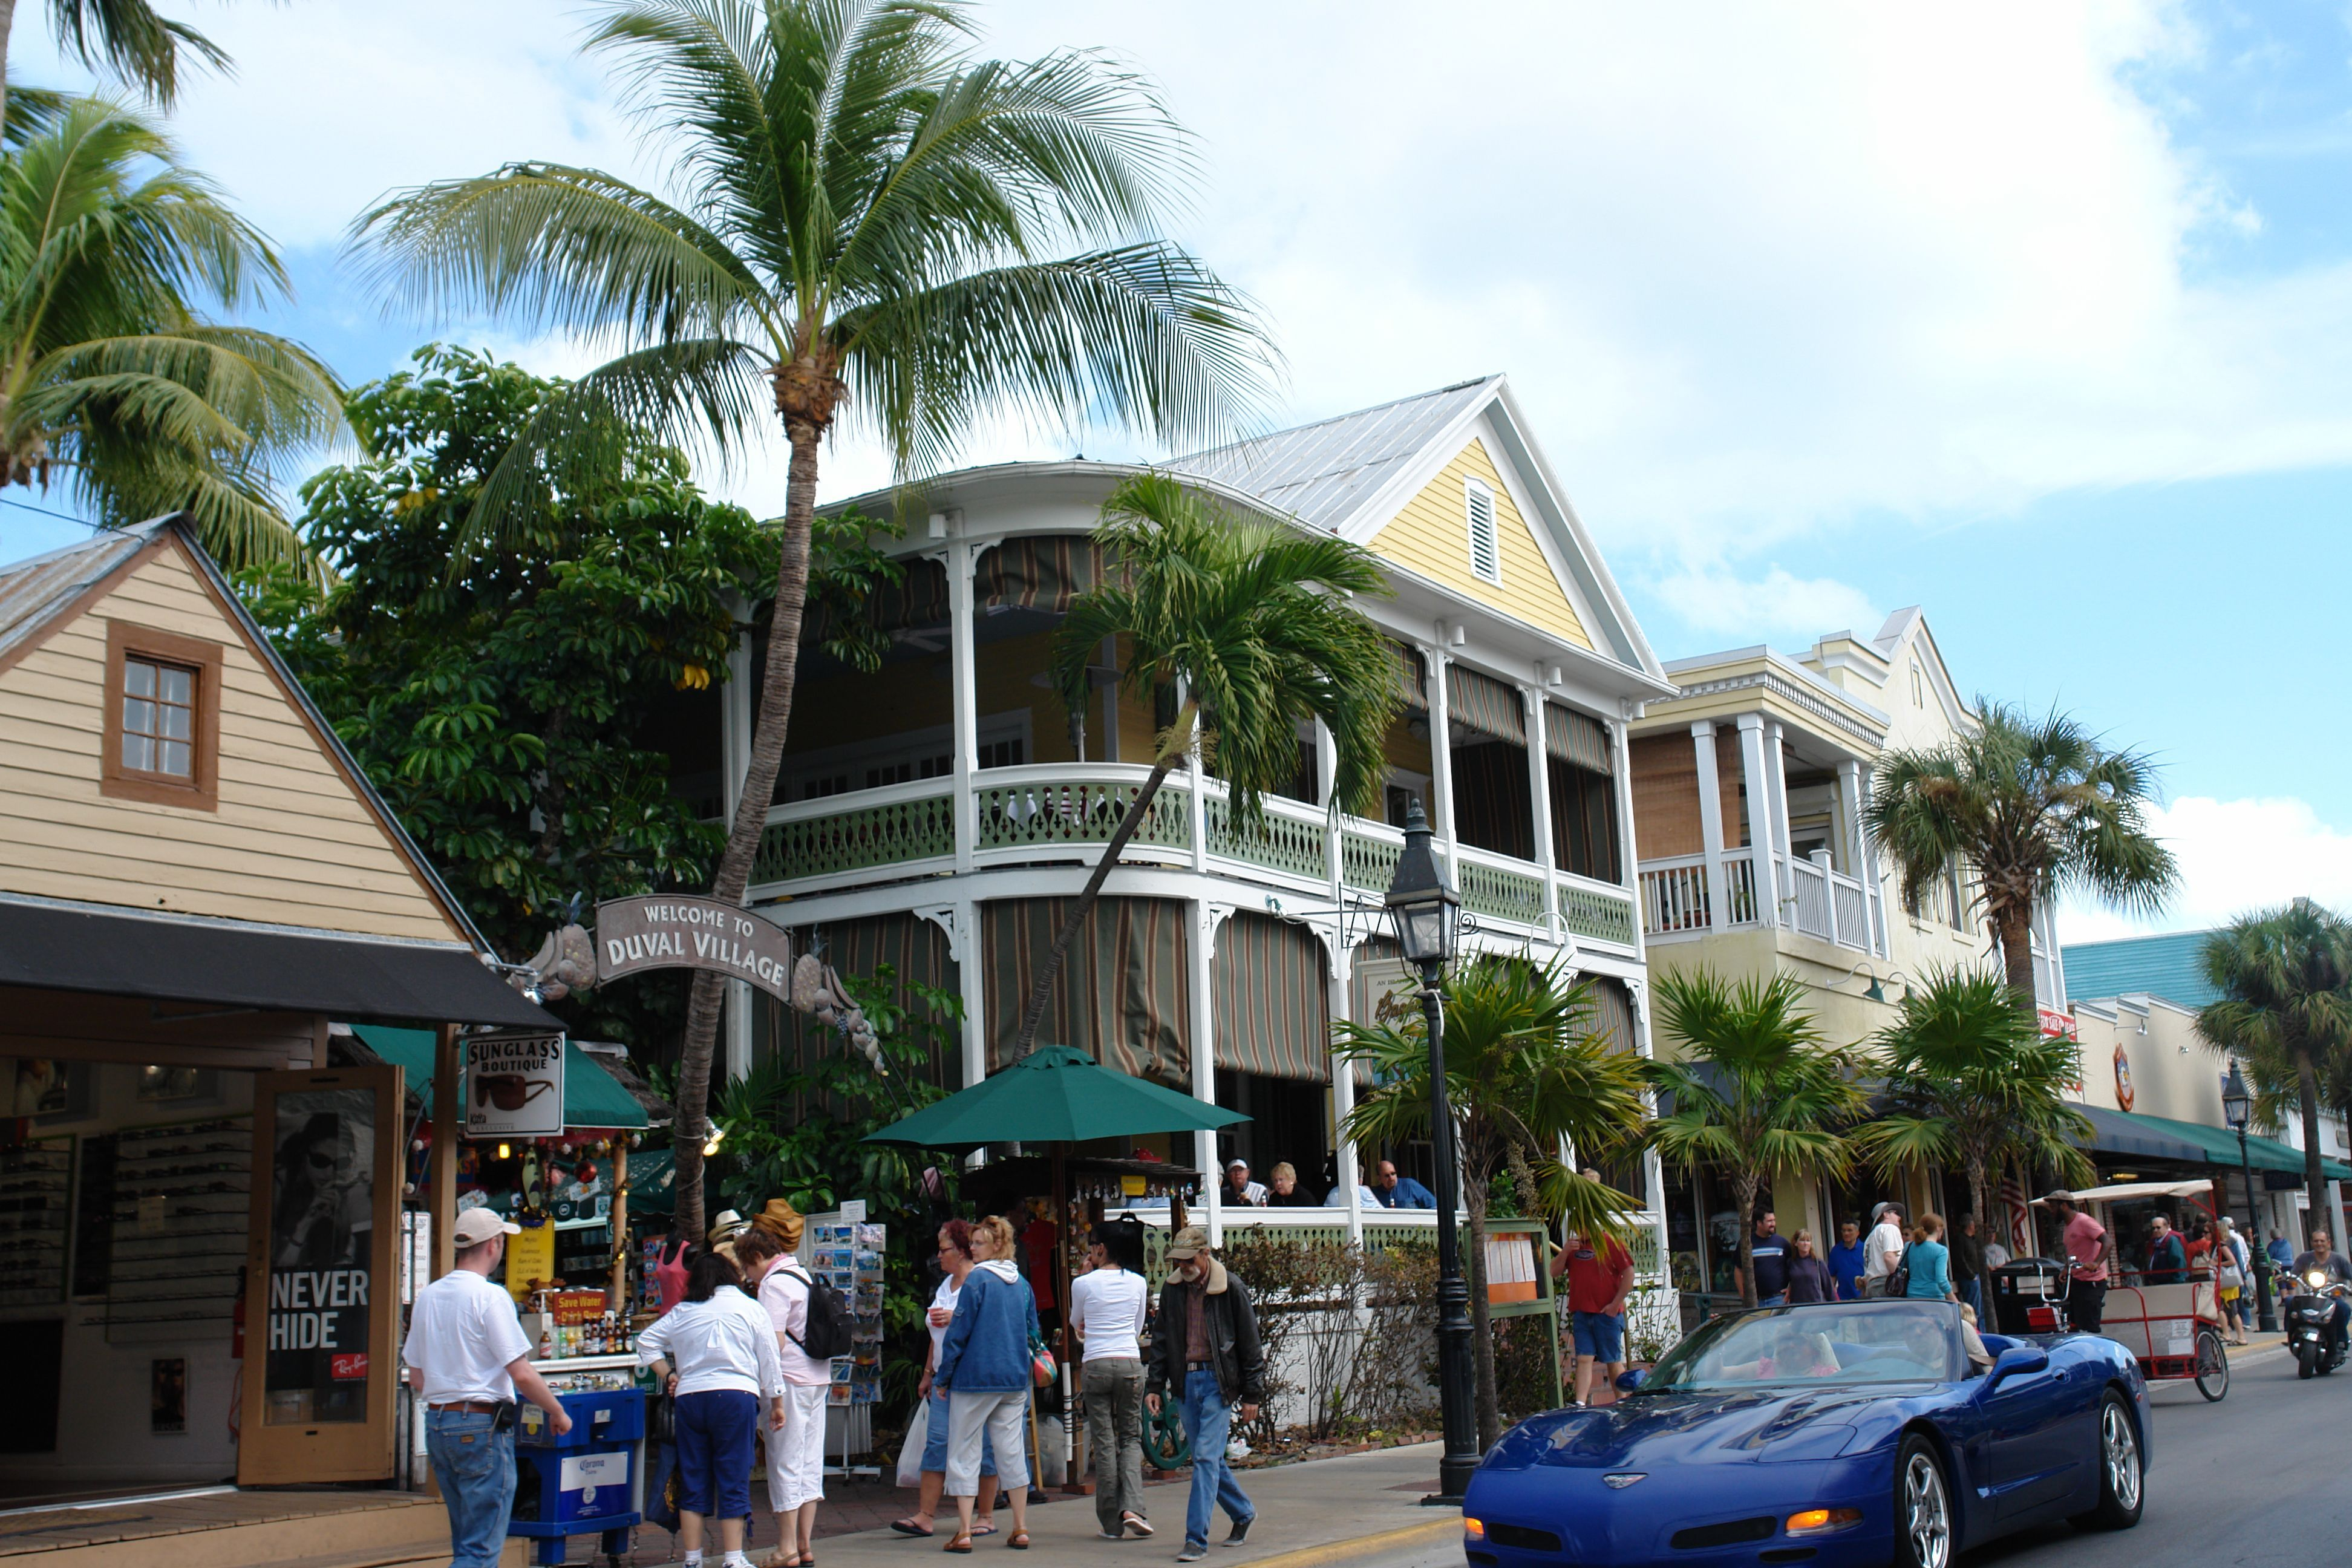 Bachelor party in key west